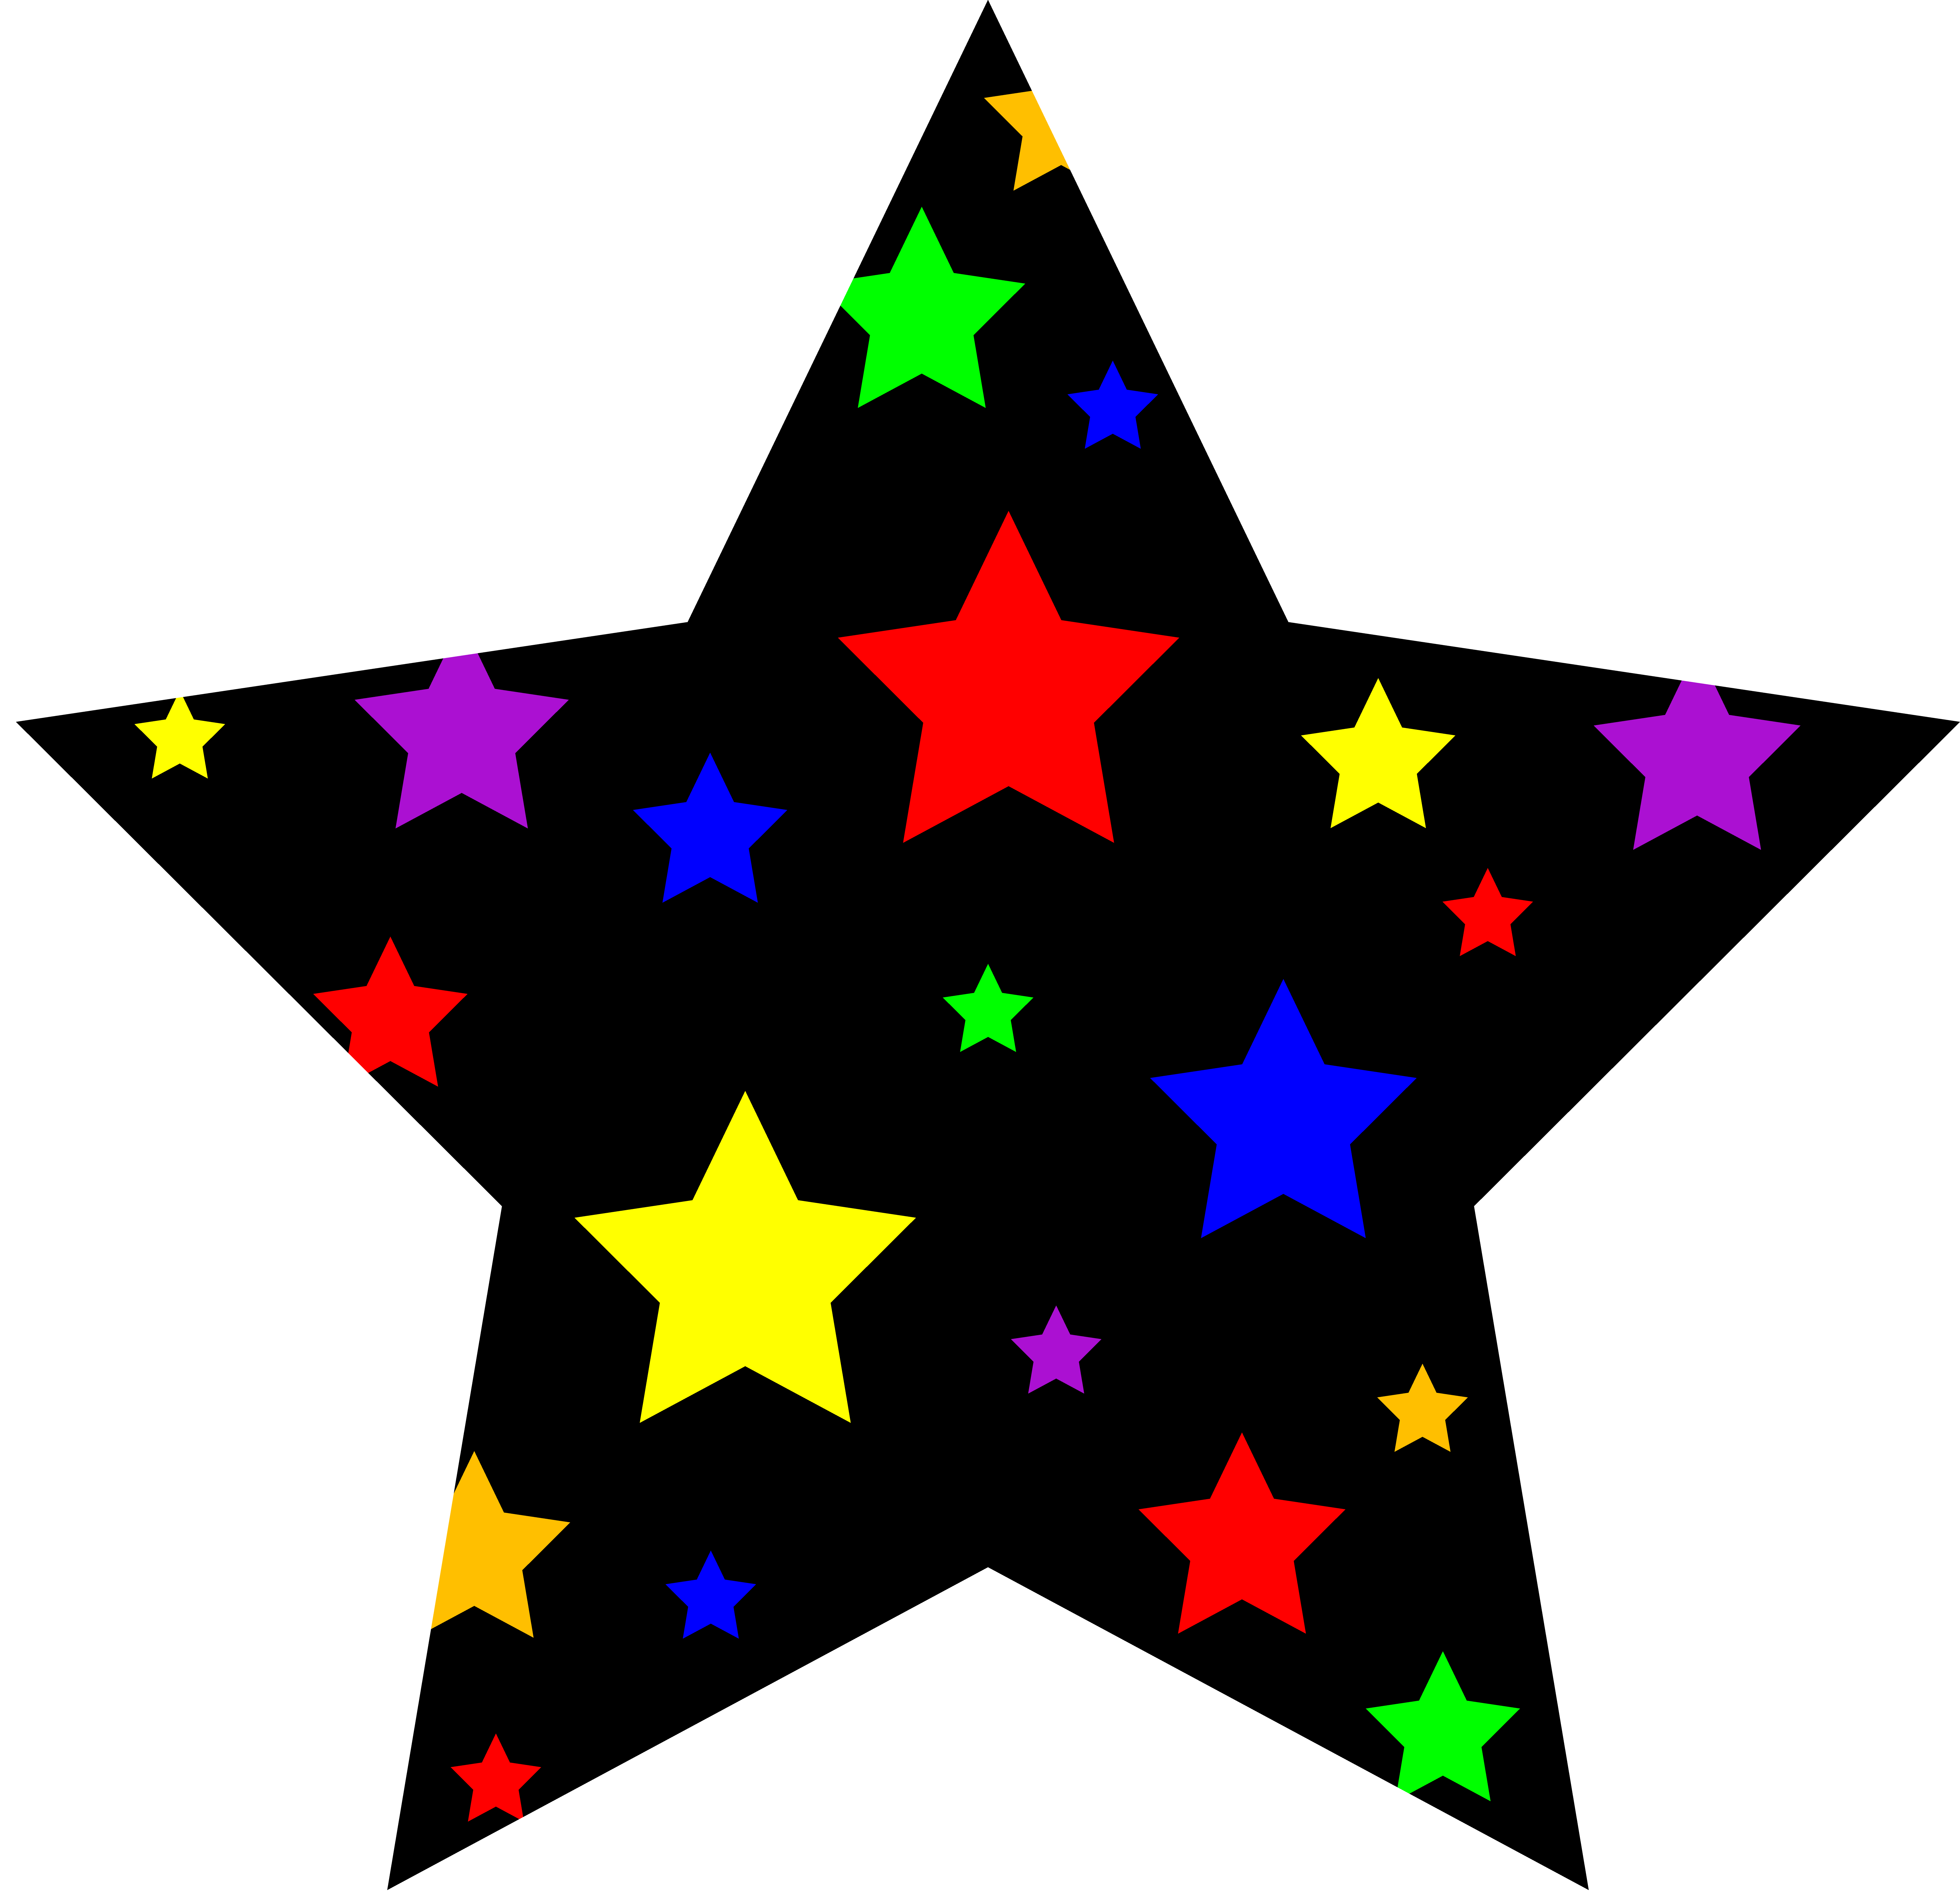 6598x6383 Pin By Paulina V.puerta On Png Star Patterns, Star